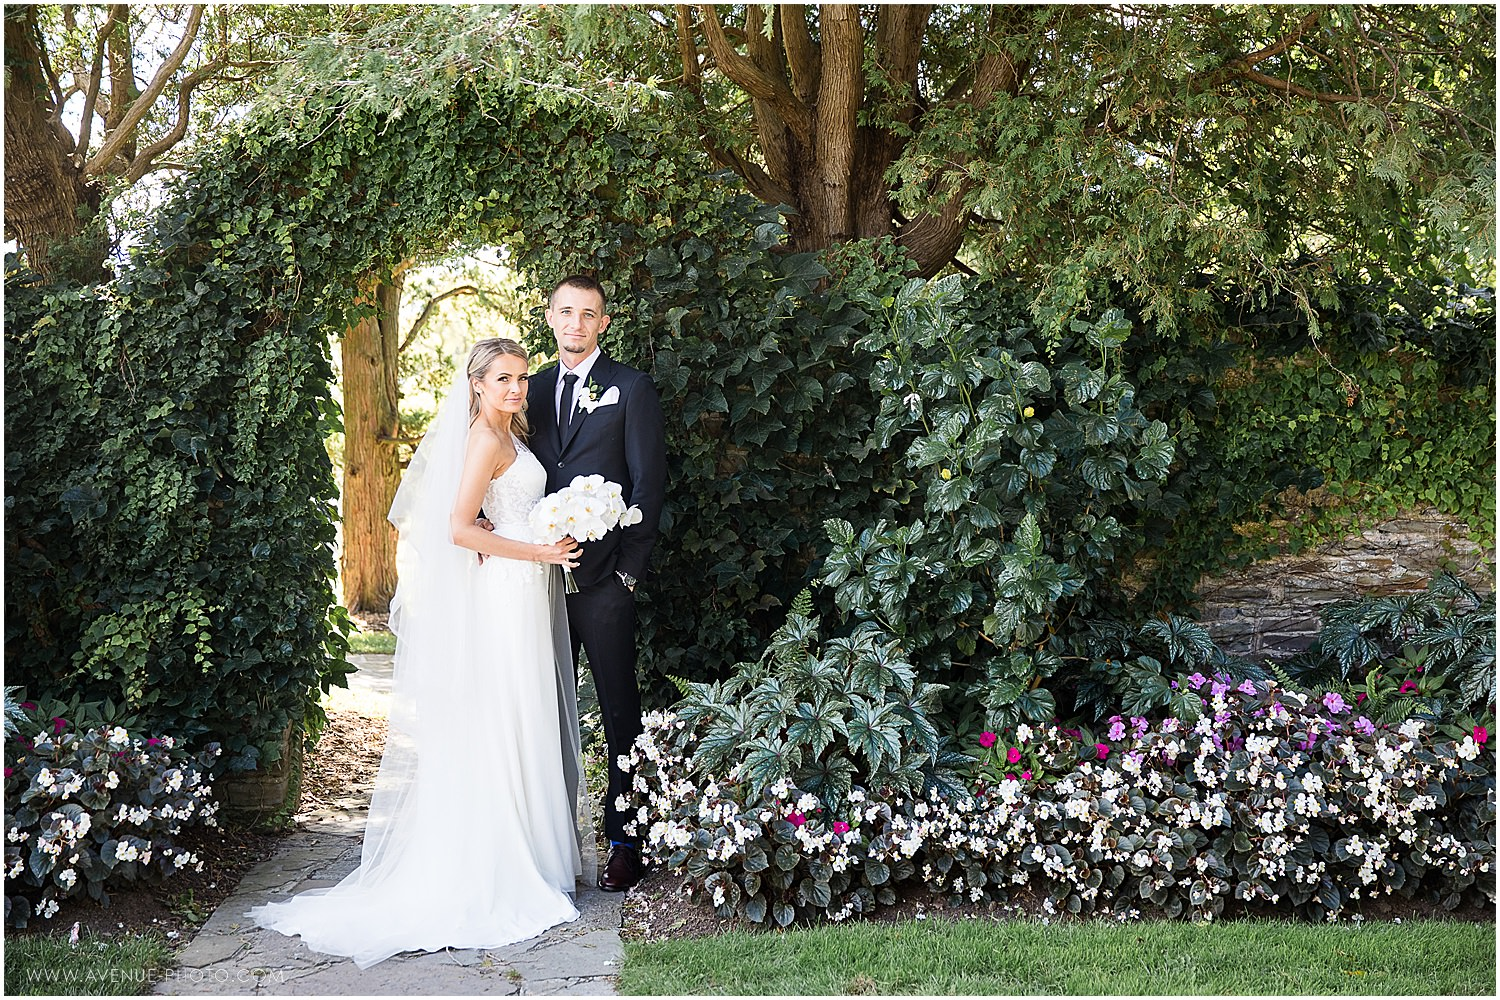 Gairloch Gardens Wedding Harbour Banquet Centre Wedding Avenue Photo Burlington Oakville Wedding Photographer